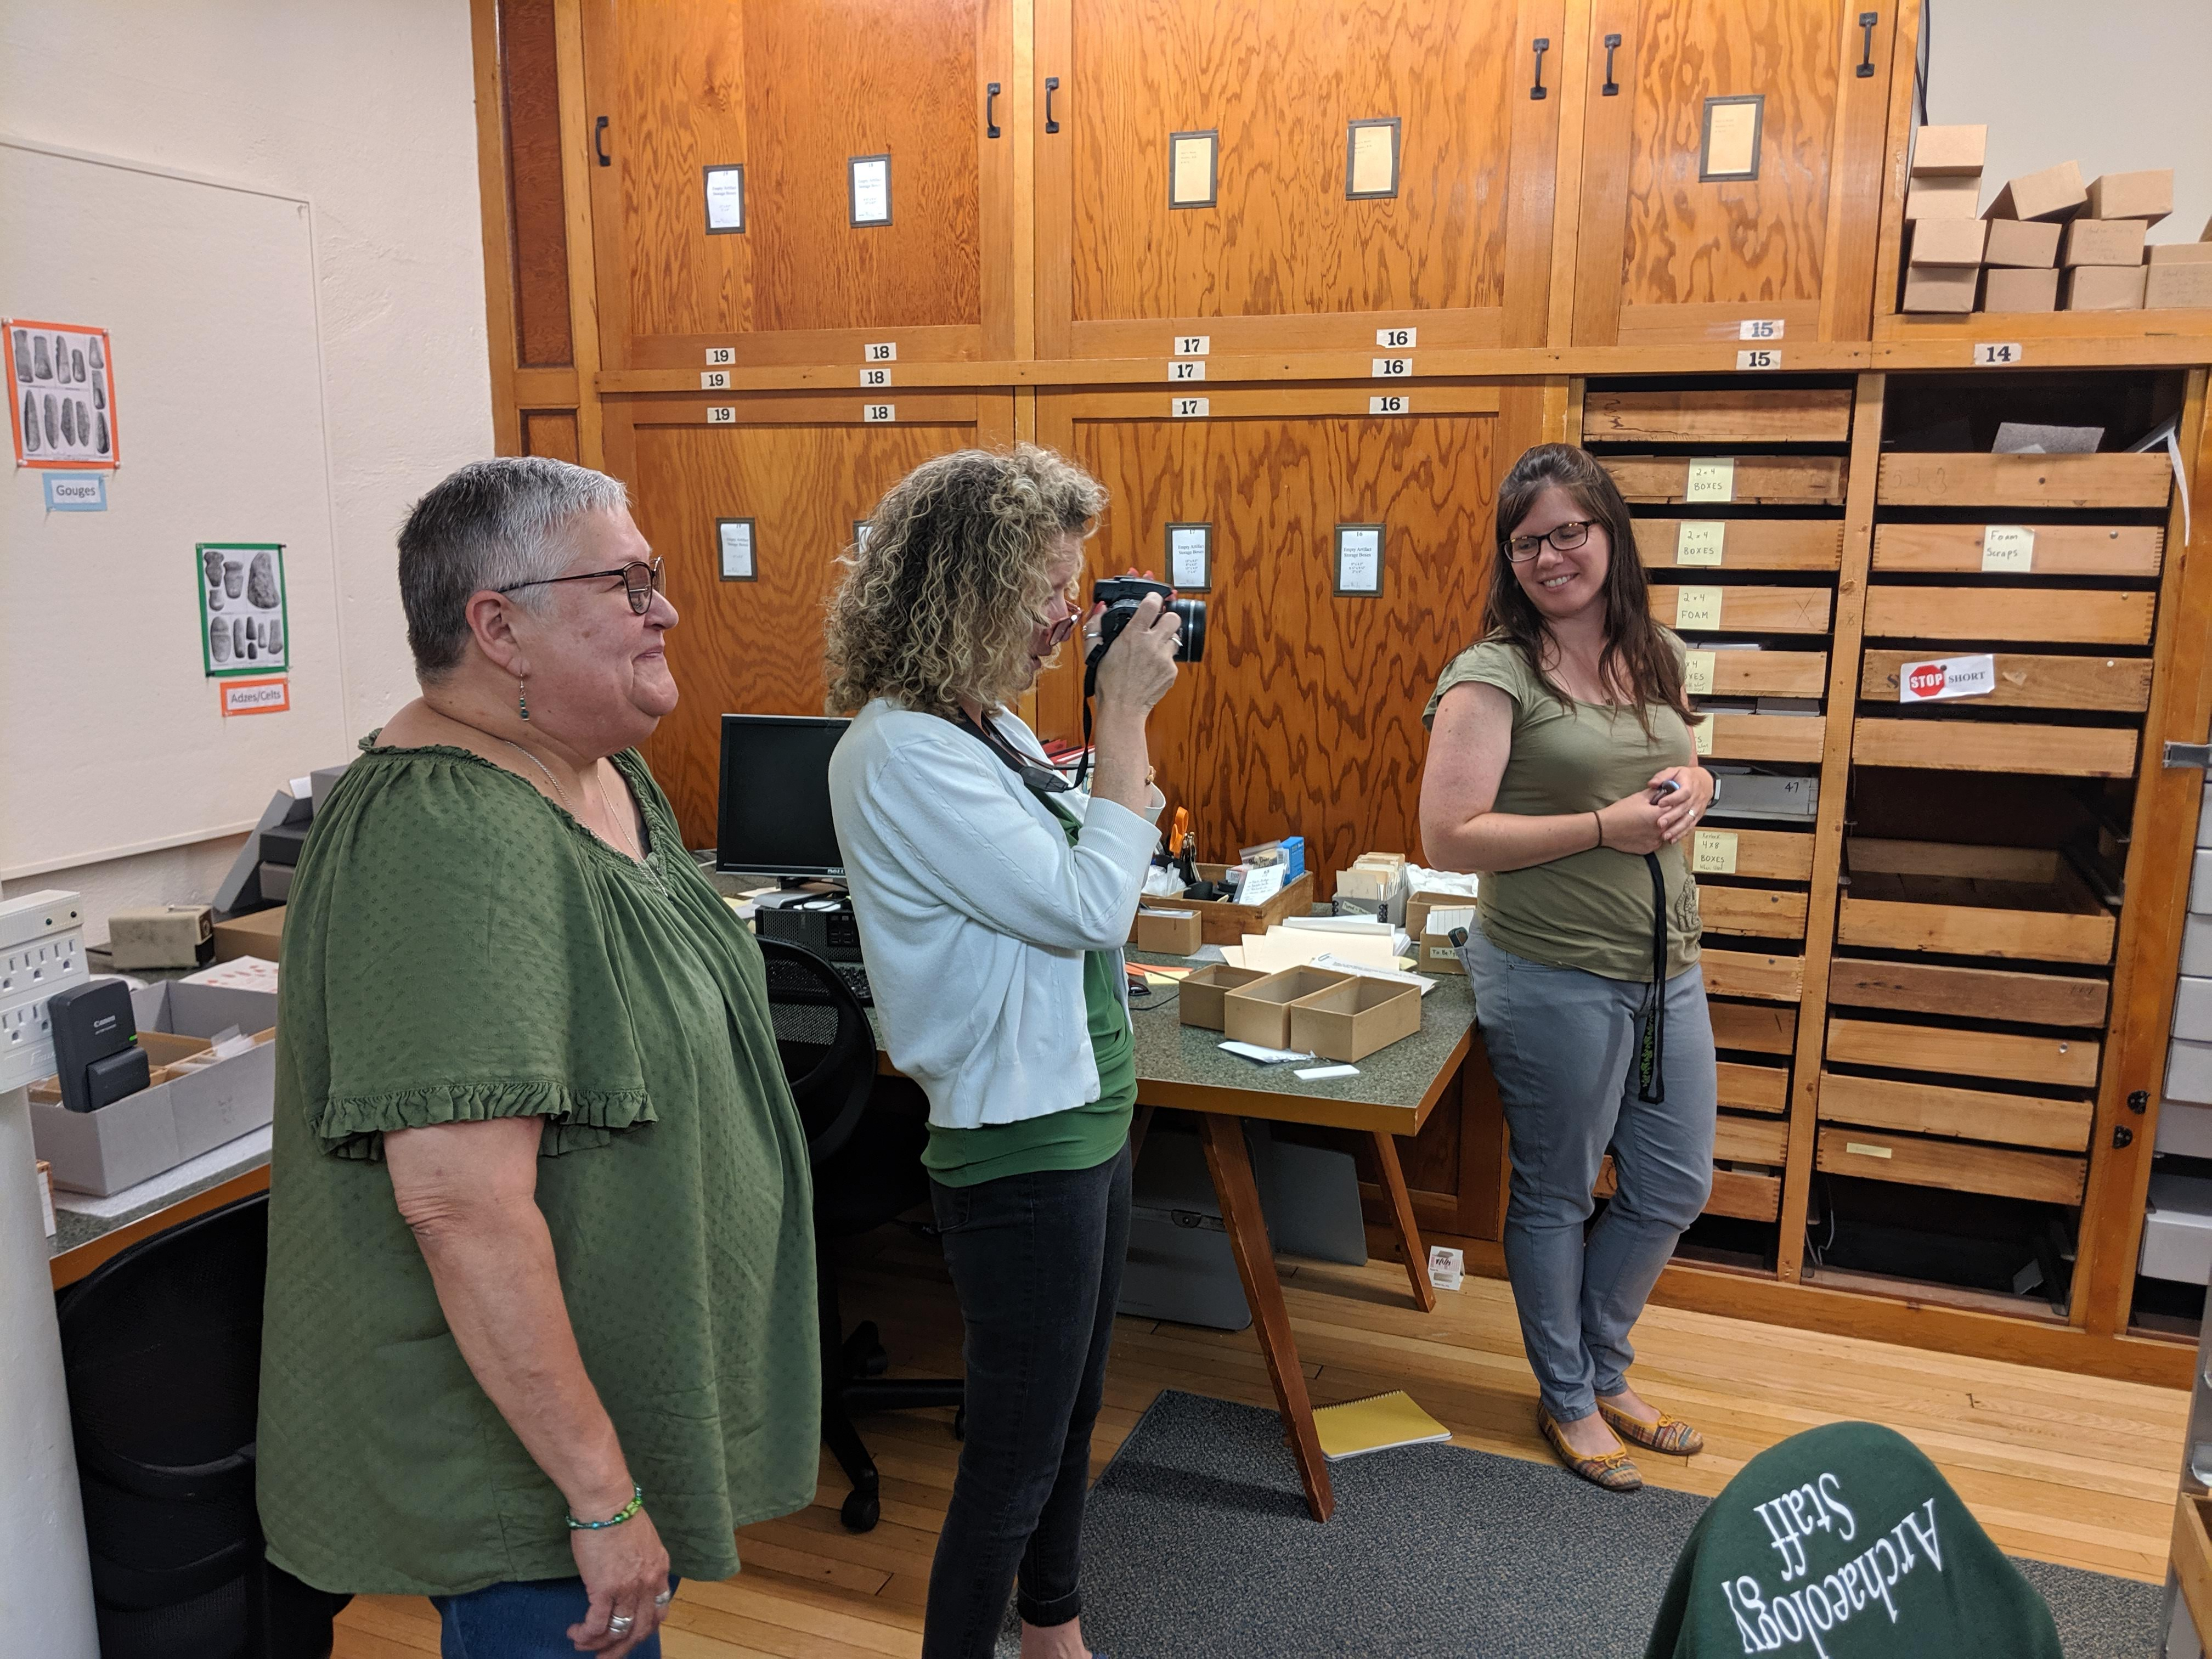 Image of tribal representatives in the Peabody Institute collection space with Marla Taylor, curator of collections